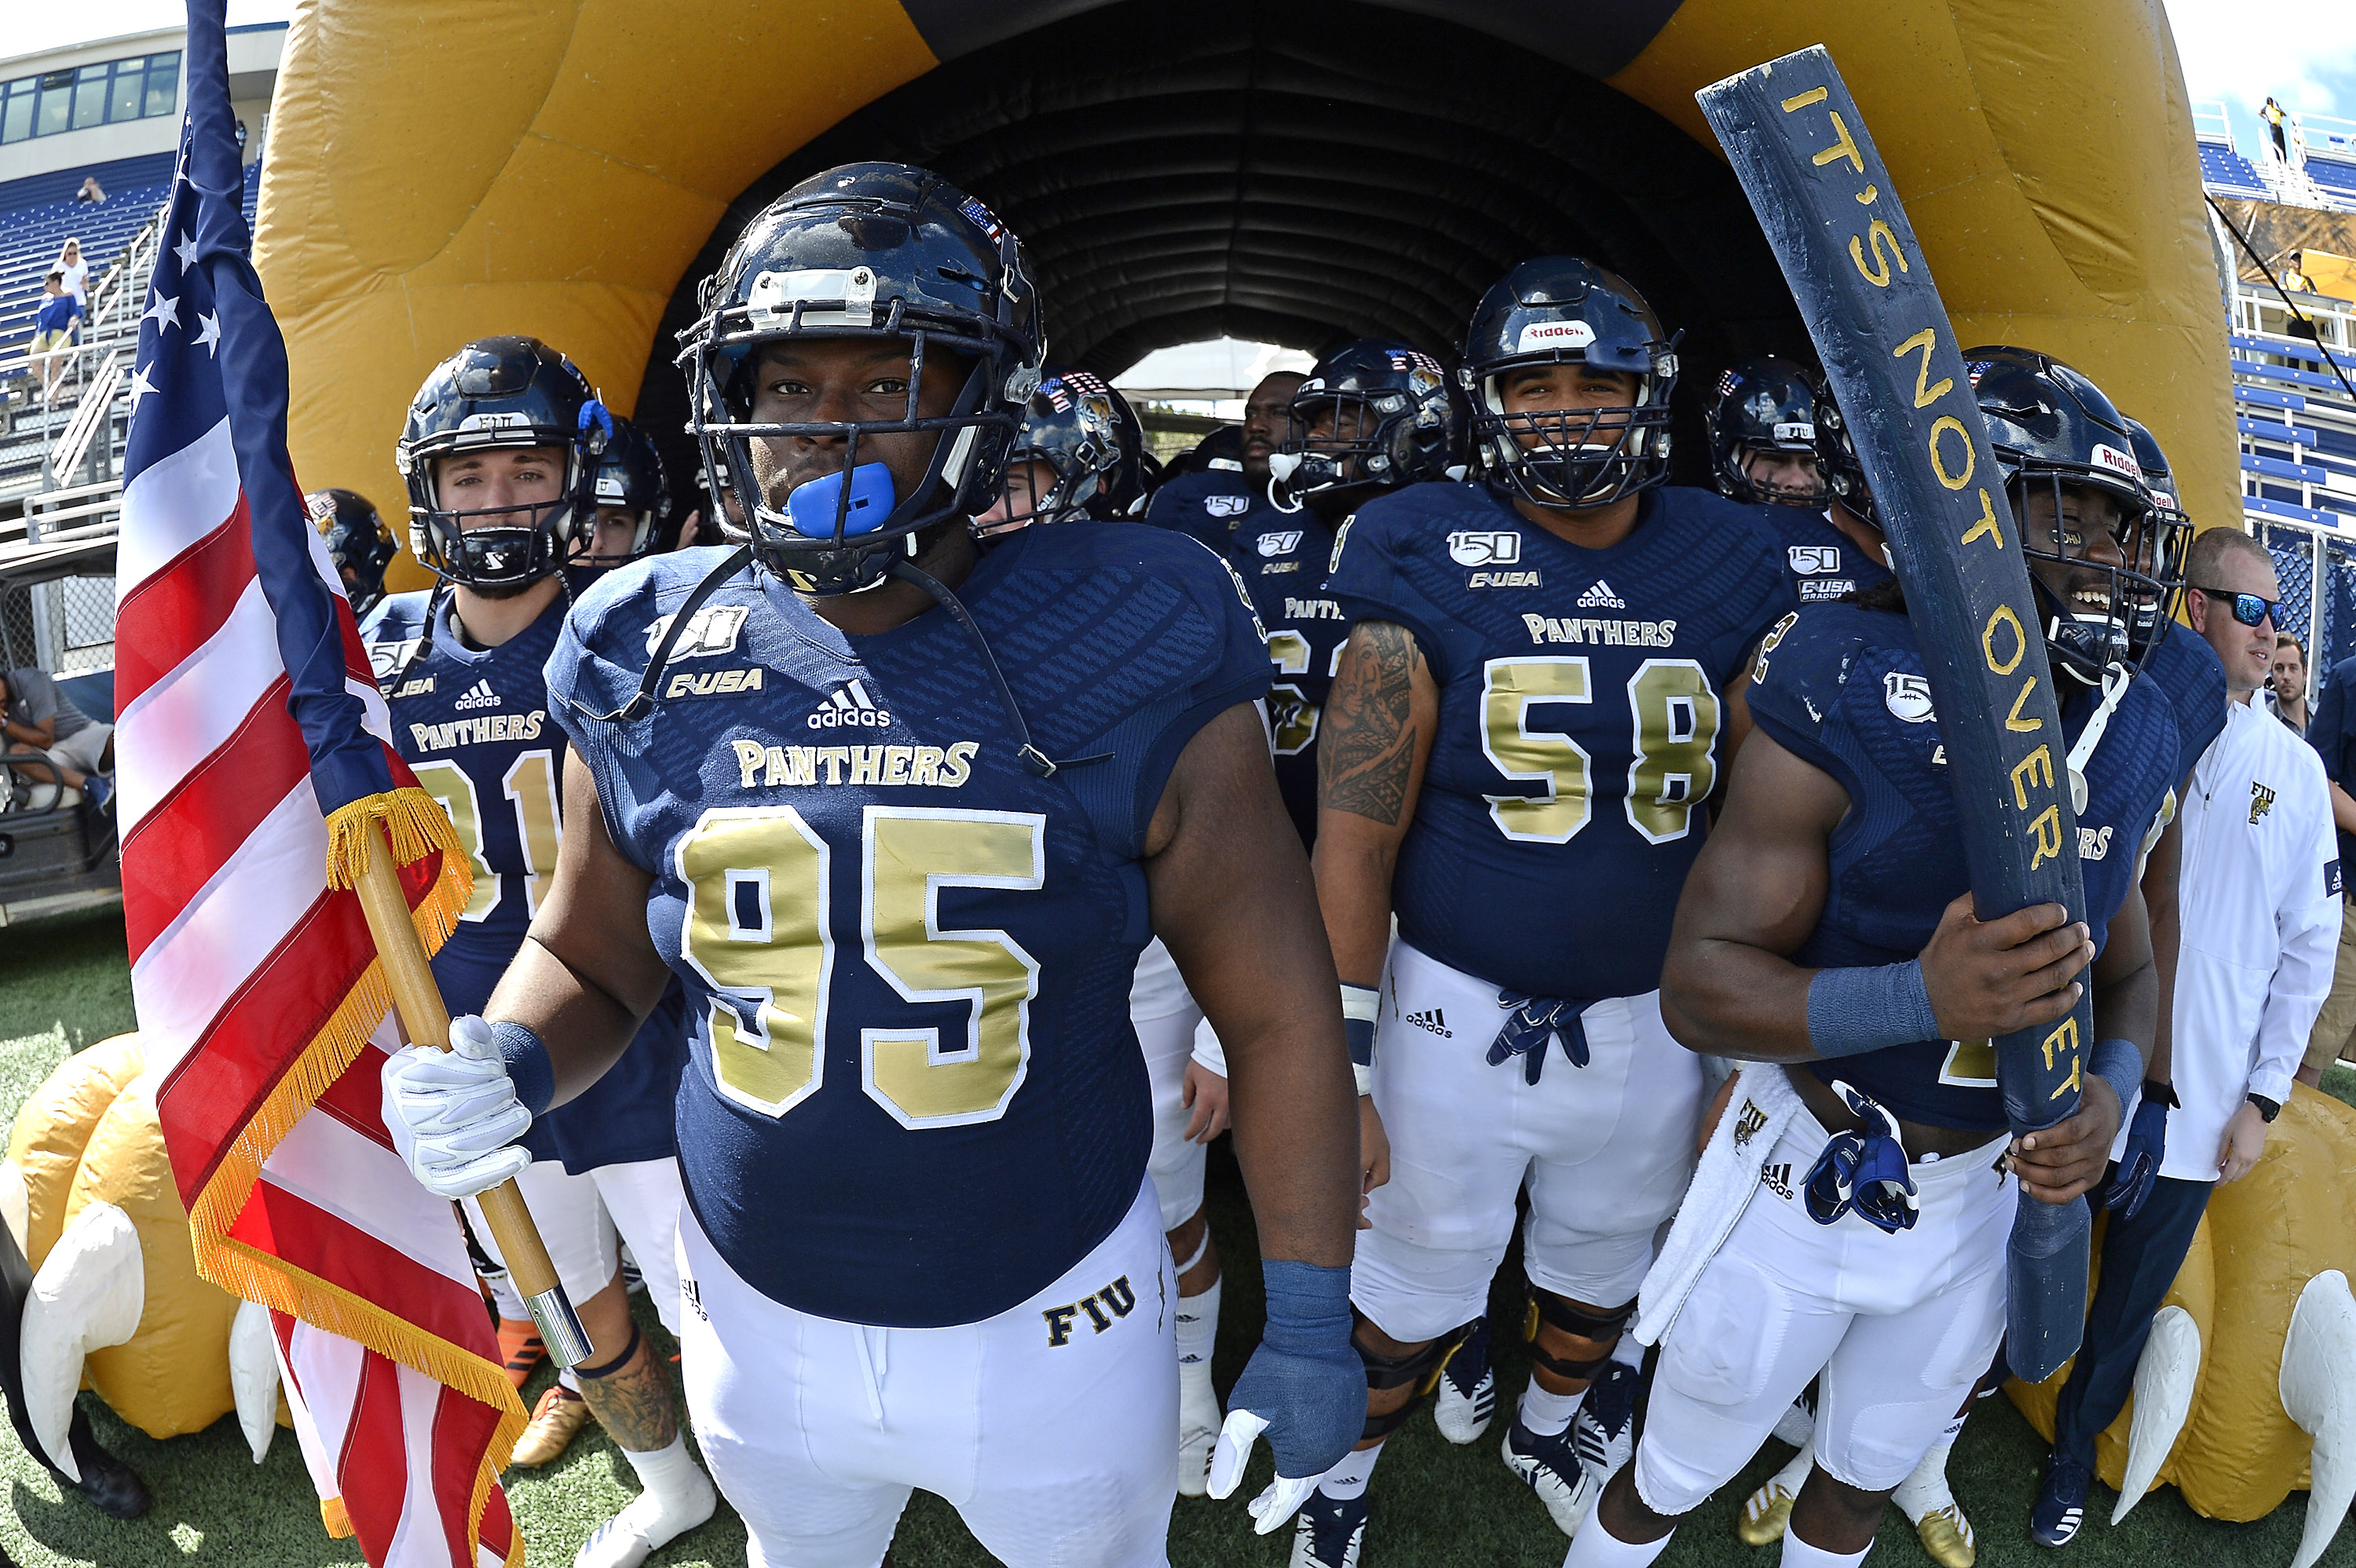 COLLEGE FOOTBALL: NOV 02 Old Dominion at FIU